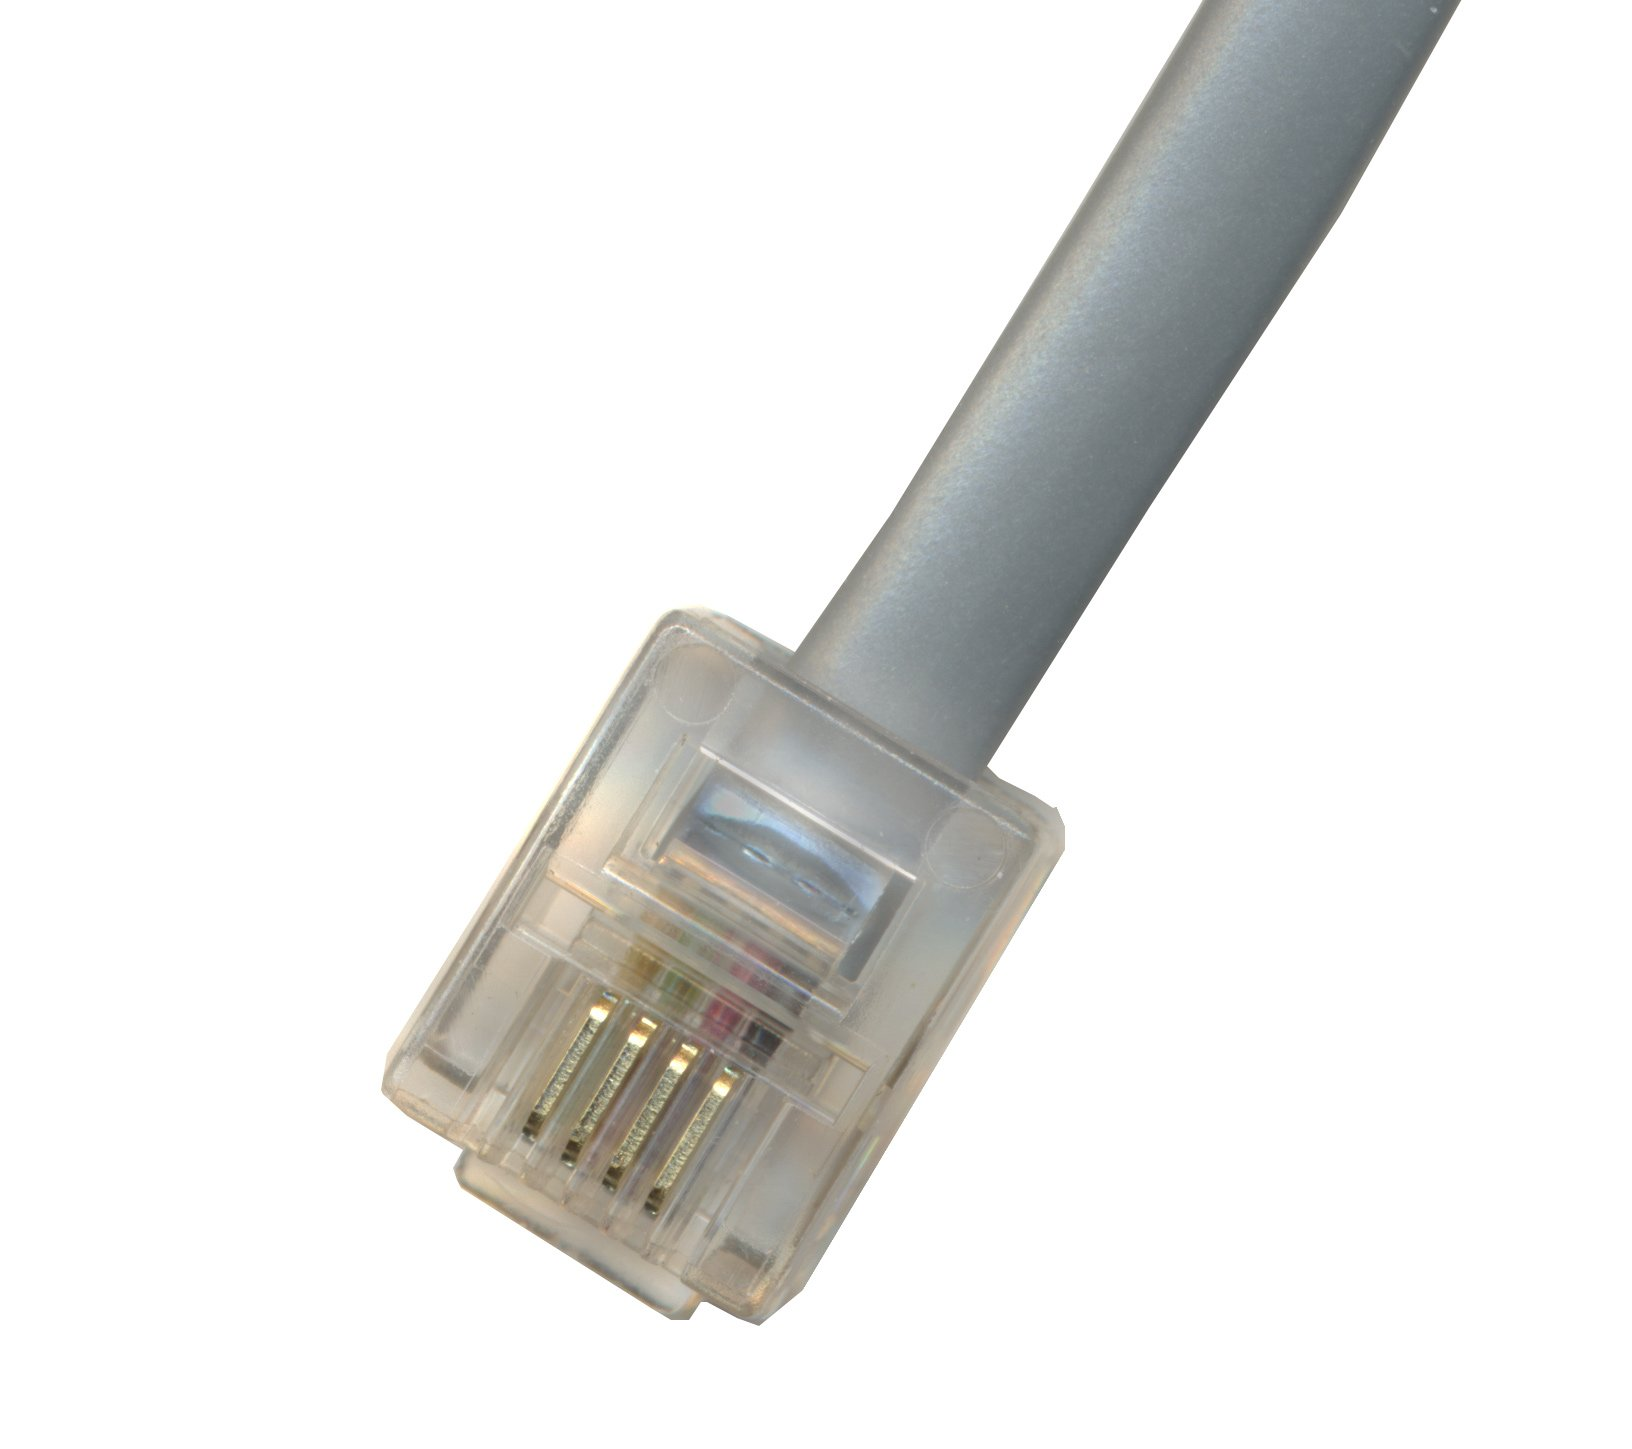 RiteAV - 150FT (45.7M) RJ11 Male to RJ11 Male 6P4C Phone Line Cord - Gray by RiteAV